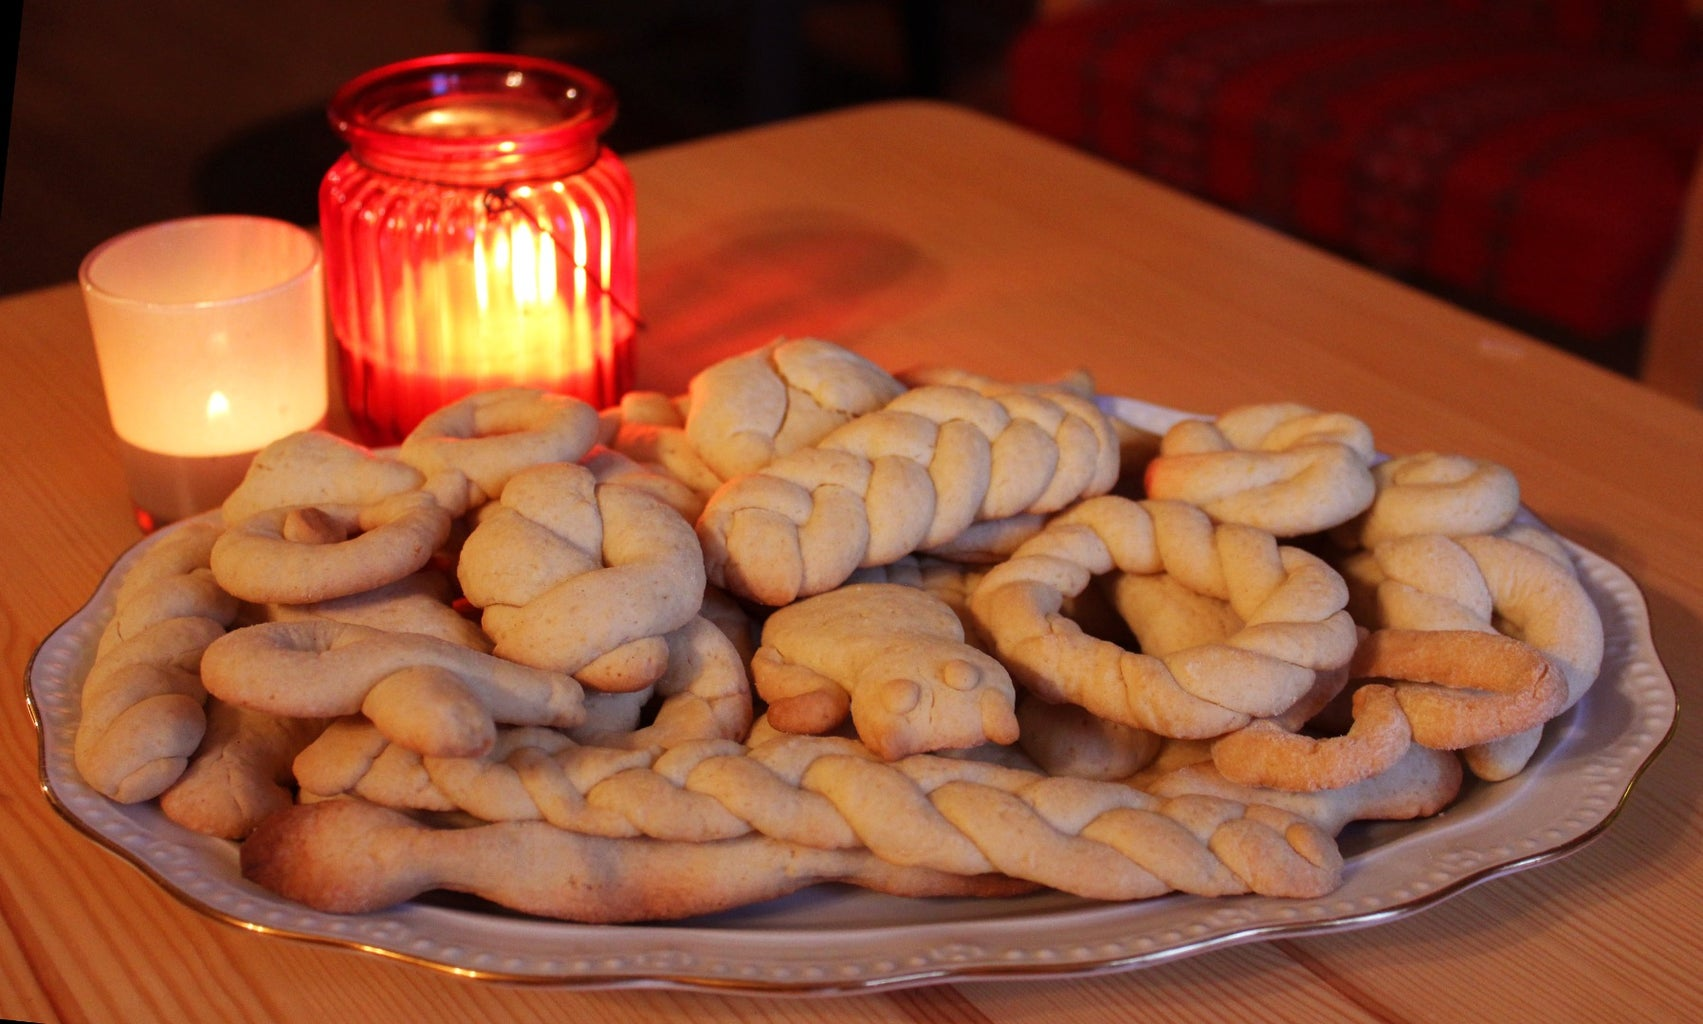 How to Make Moldable Butter Cookies